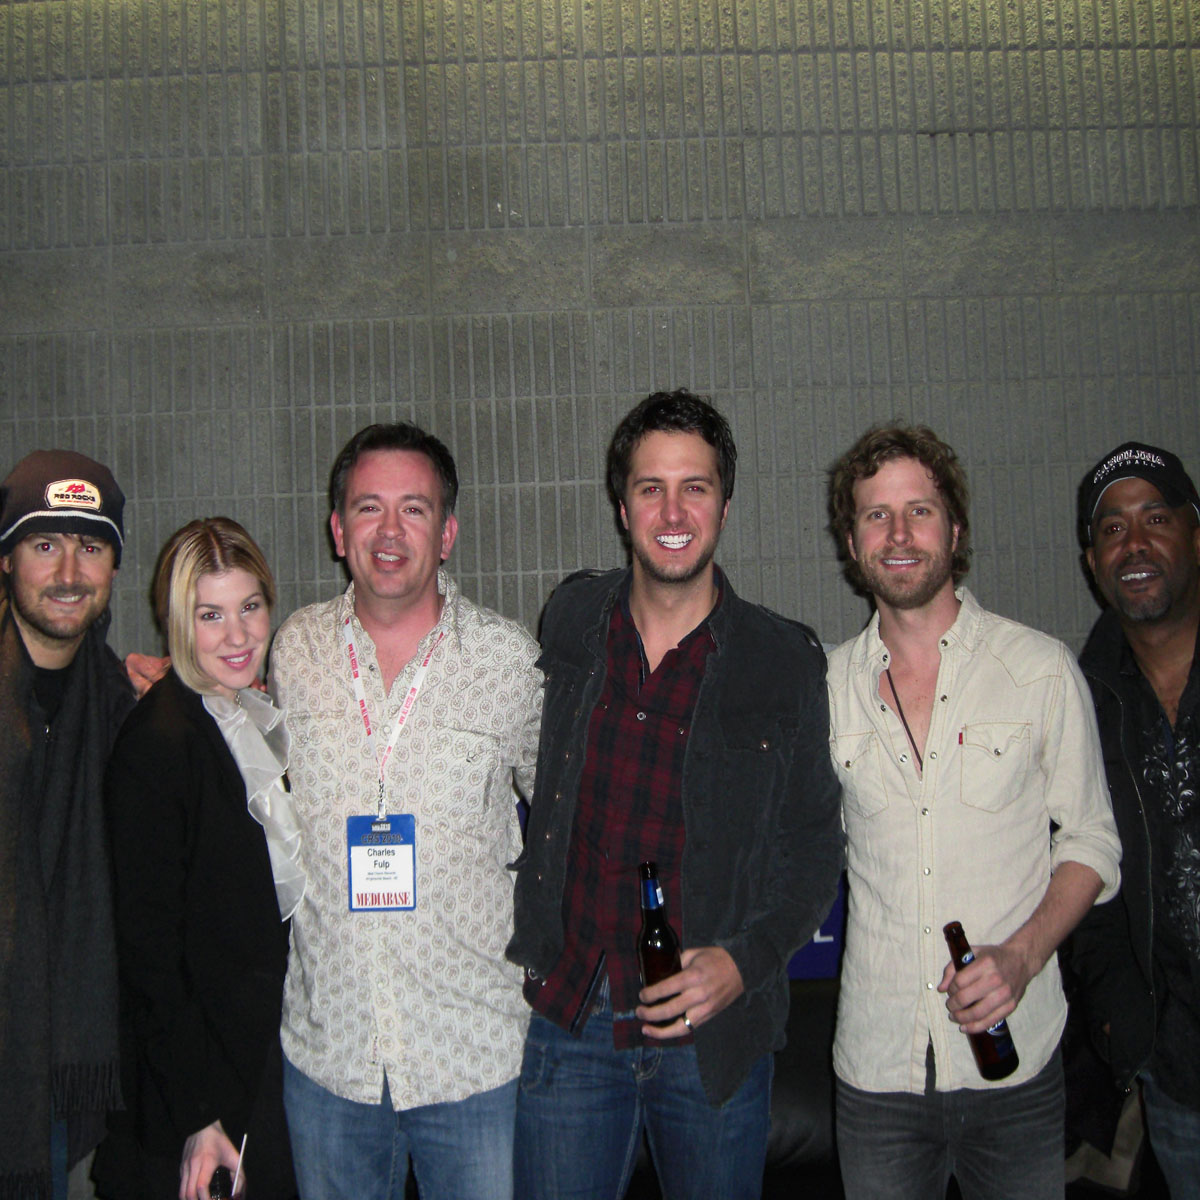 Eric Church, Emily West, Luke Bryan, Dierks Bentley and Darius Rucker.